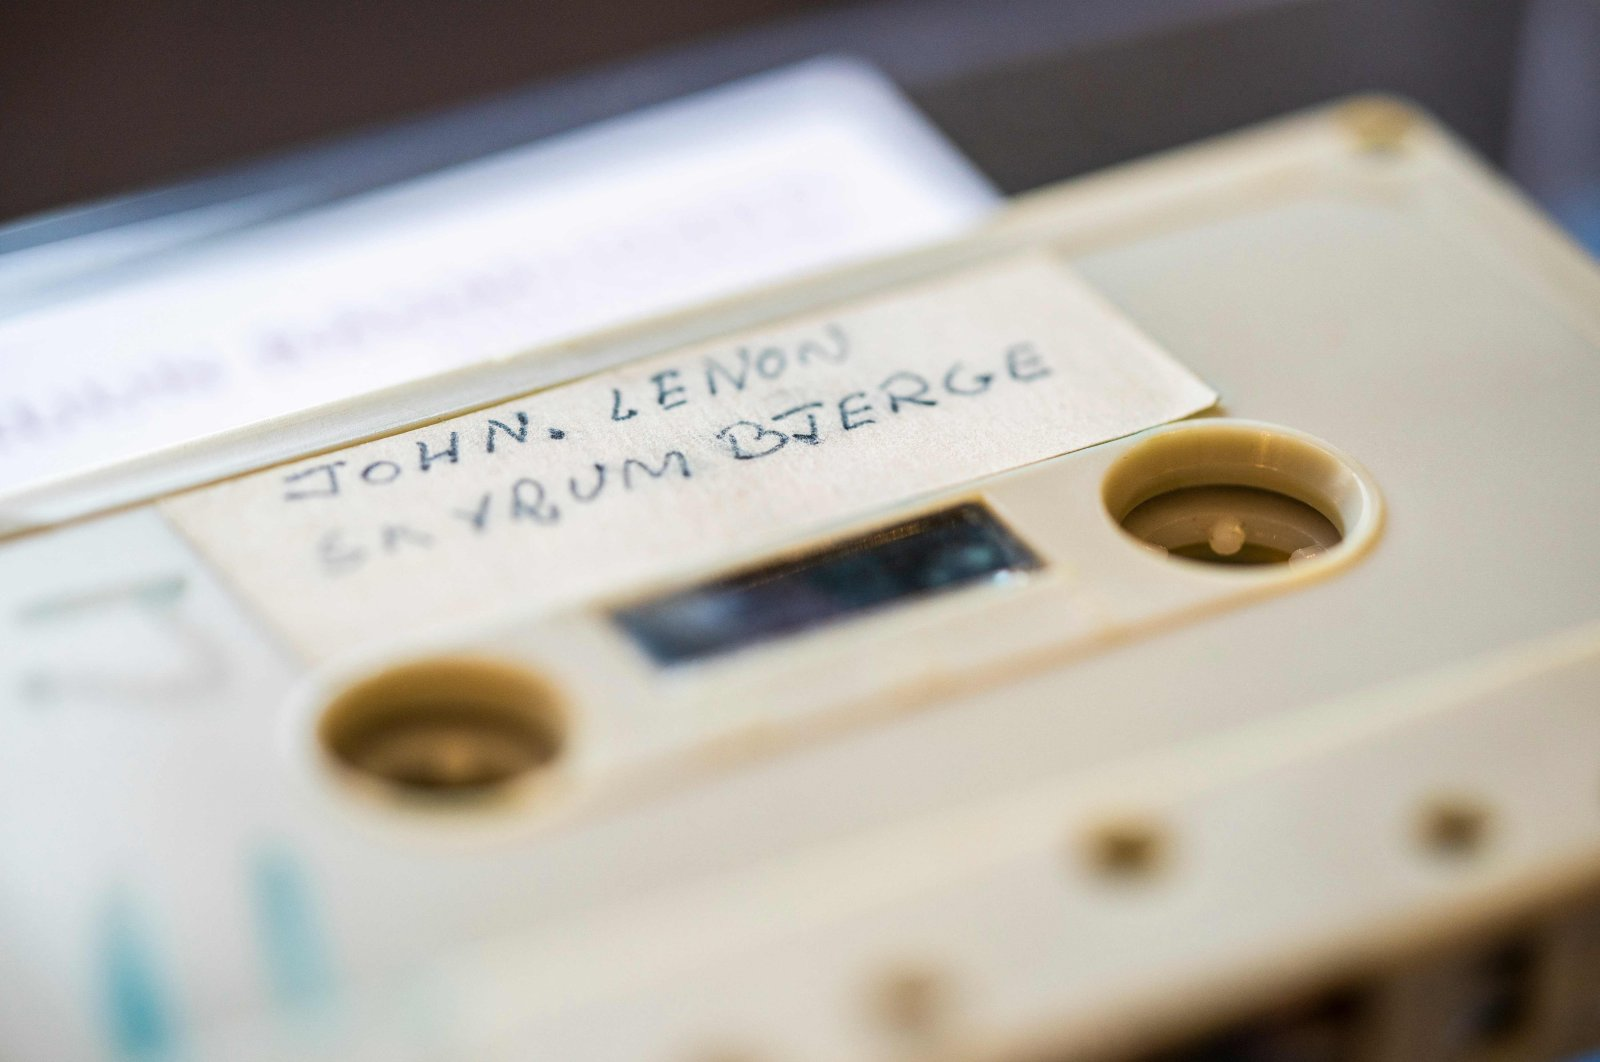 A cassette with the recording of four Danish schoolboys' interview with John Lennon and Yoko Ono is photographed at Bruun Rasmussen Auction House in Copenhagen, Denmark, Sept. 24, 2021. (AFP Photo)